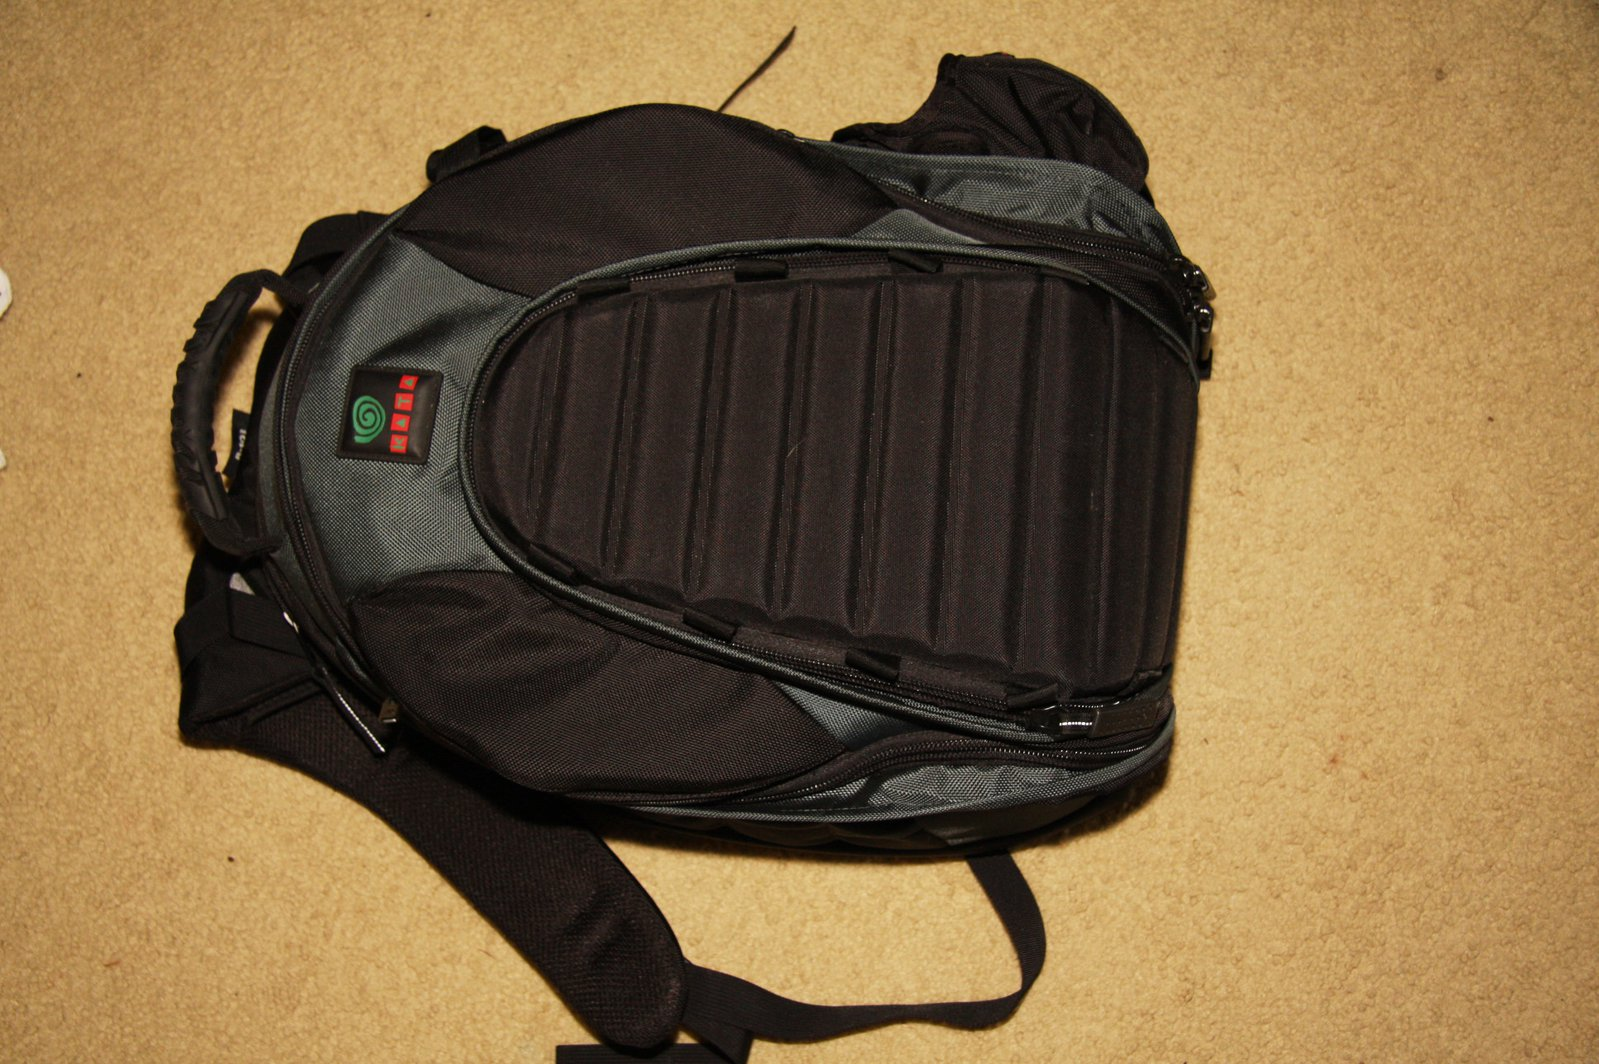 Kata Bag for sale